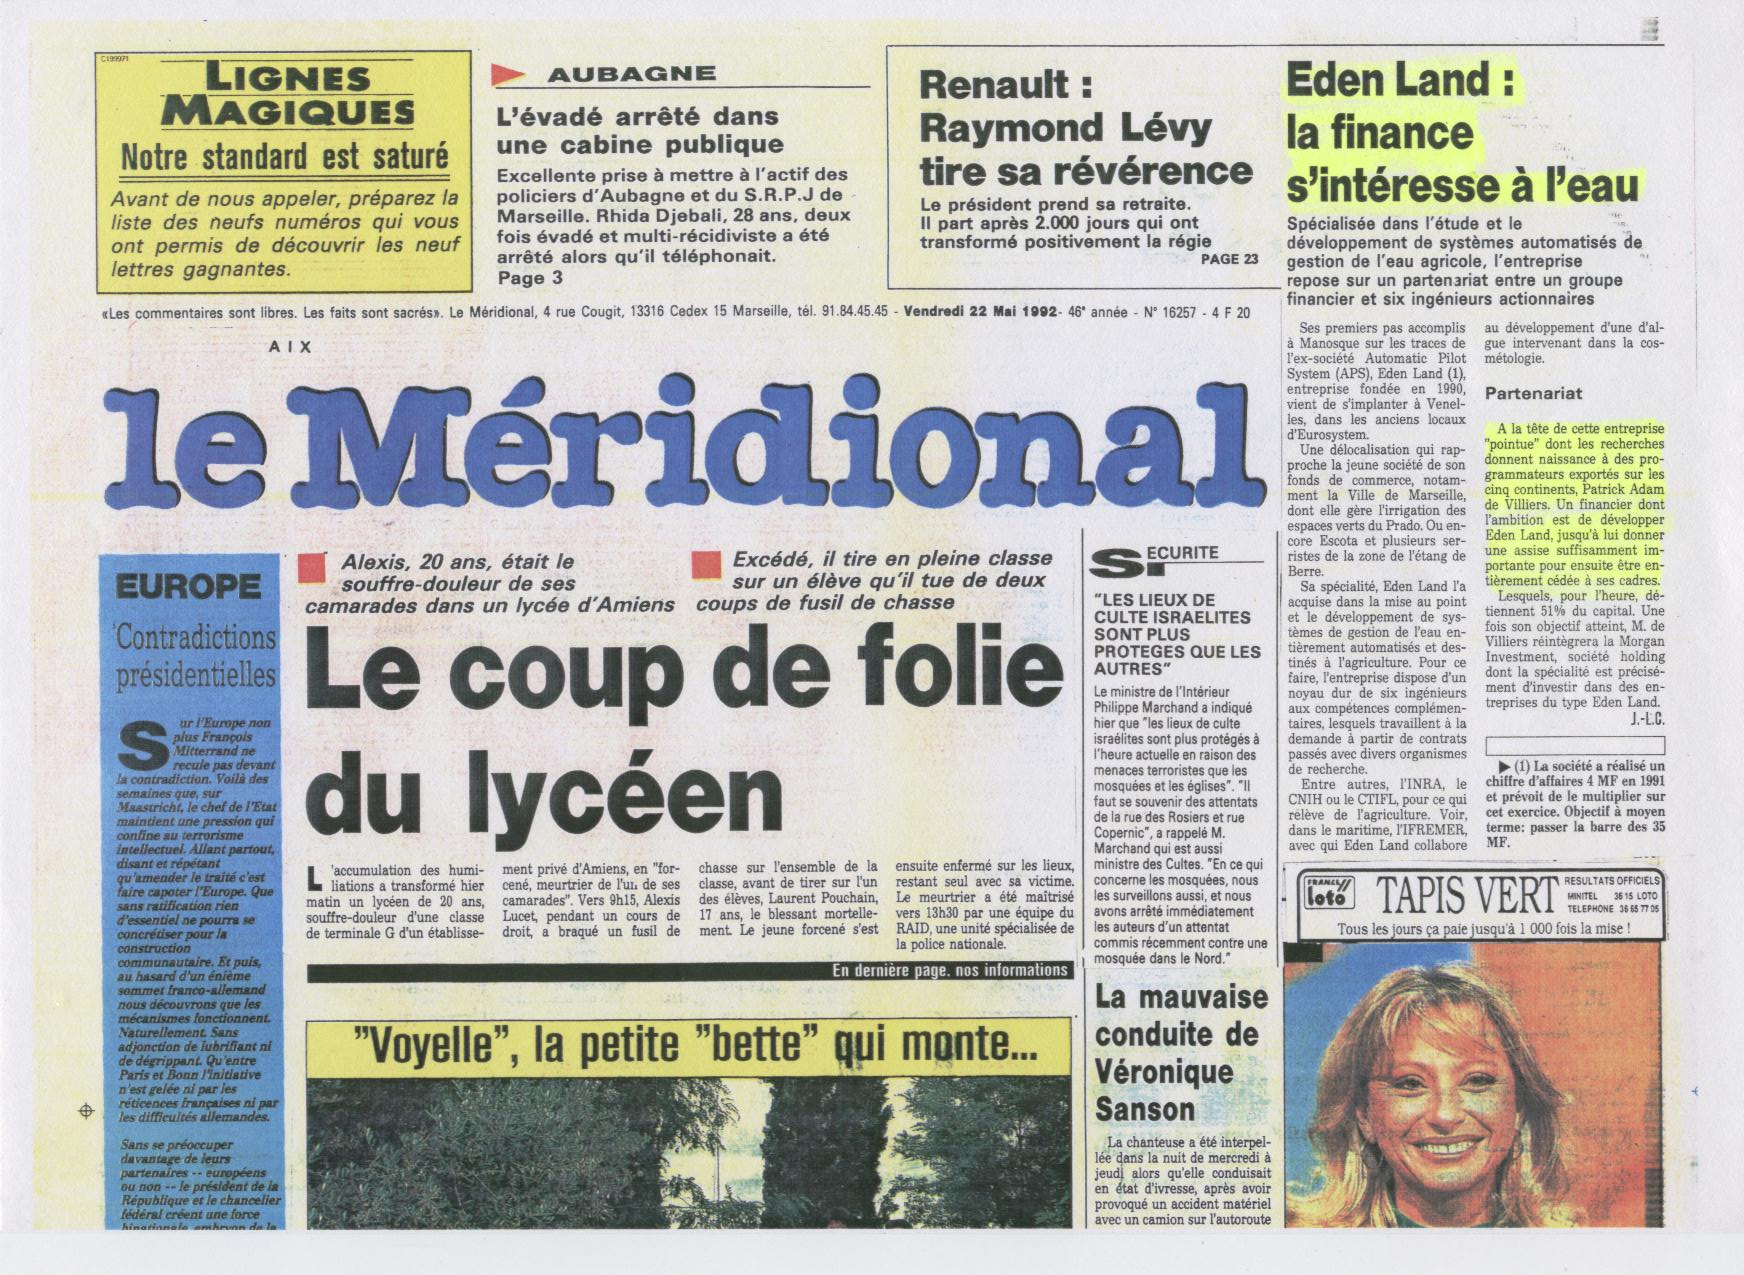 1992  22  Mai  Eden Land Manosque France.jpg